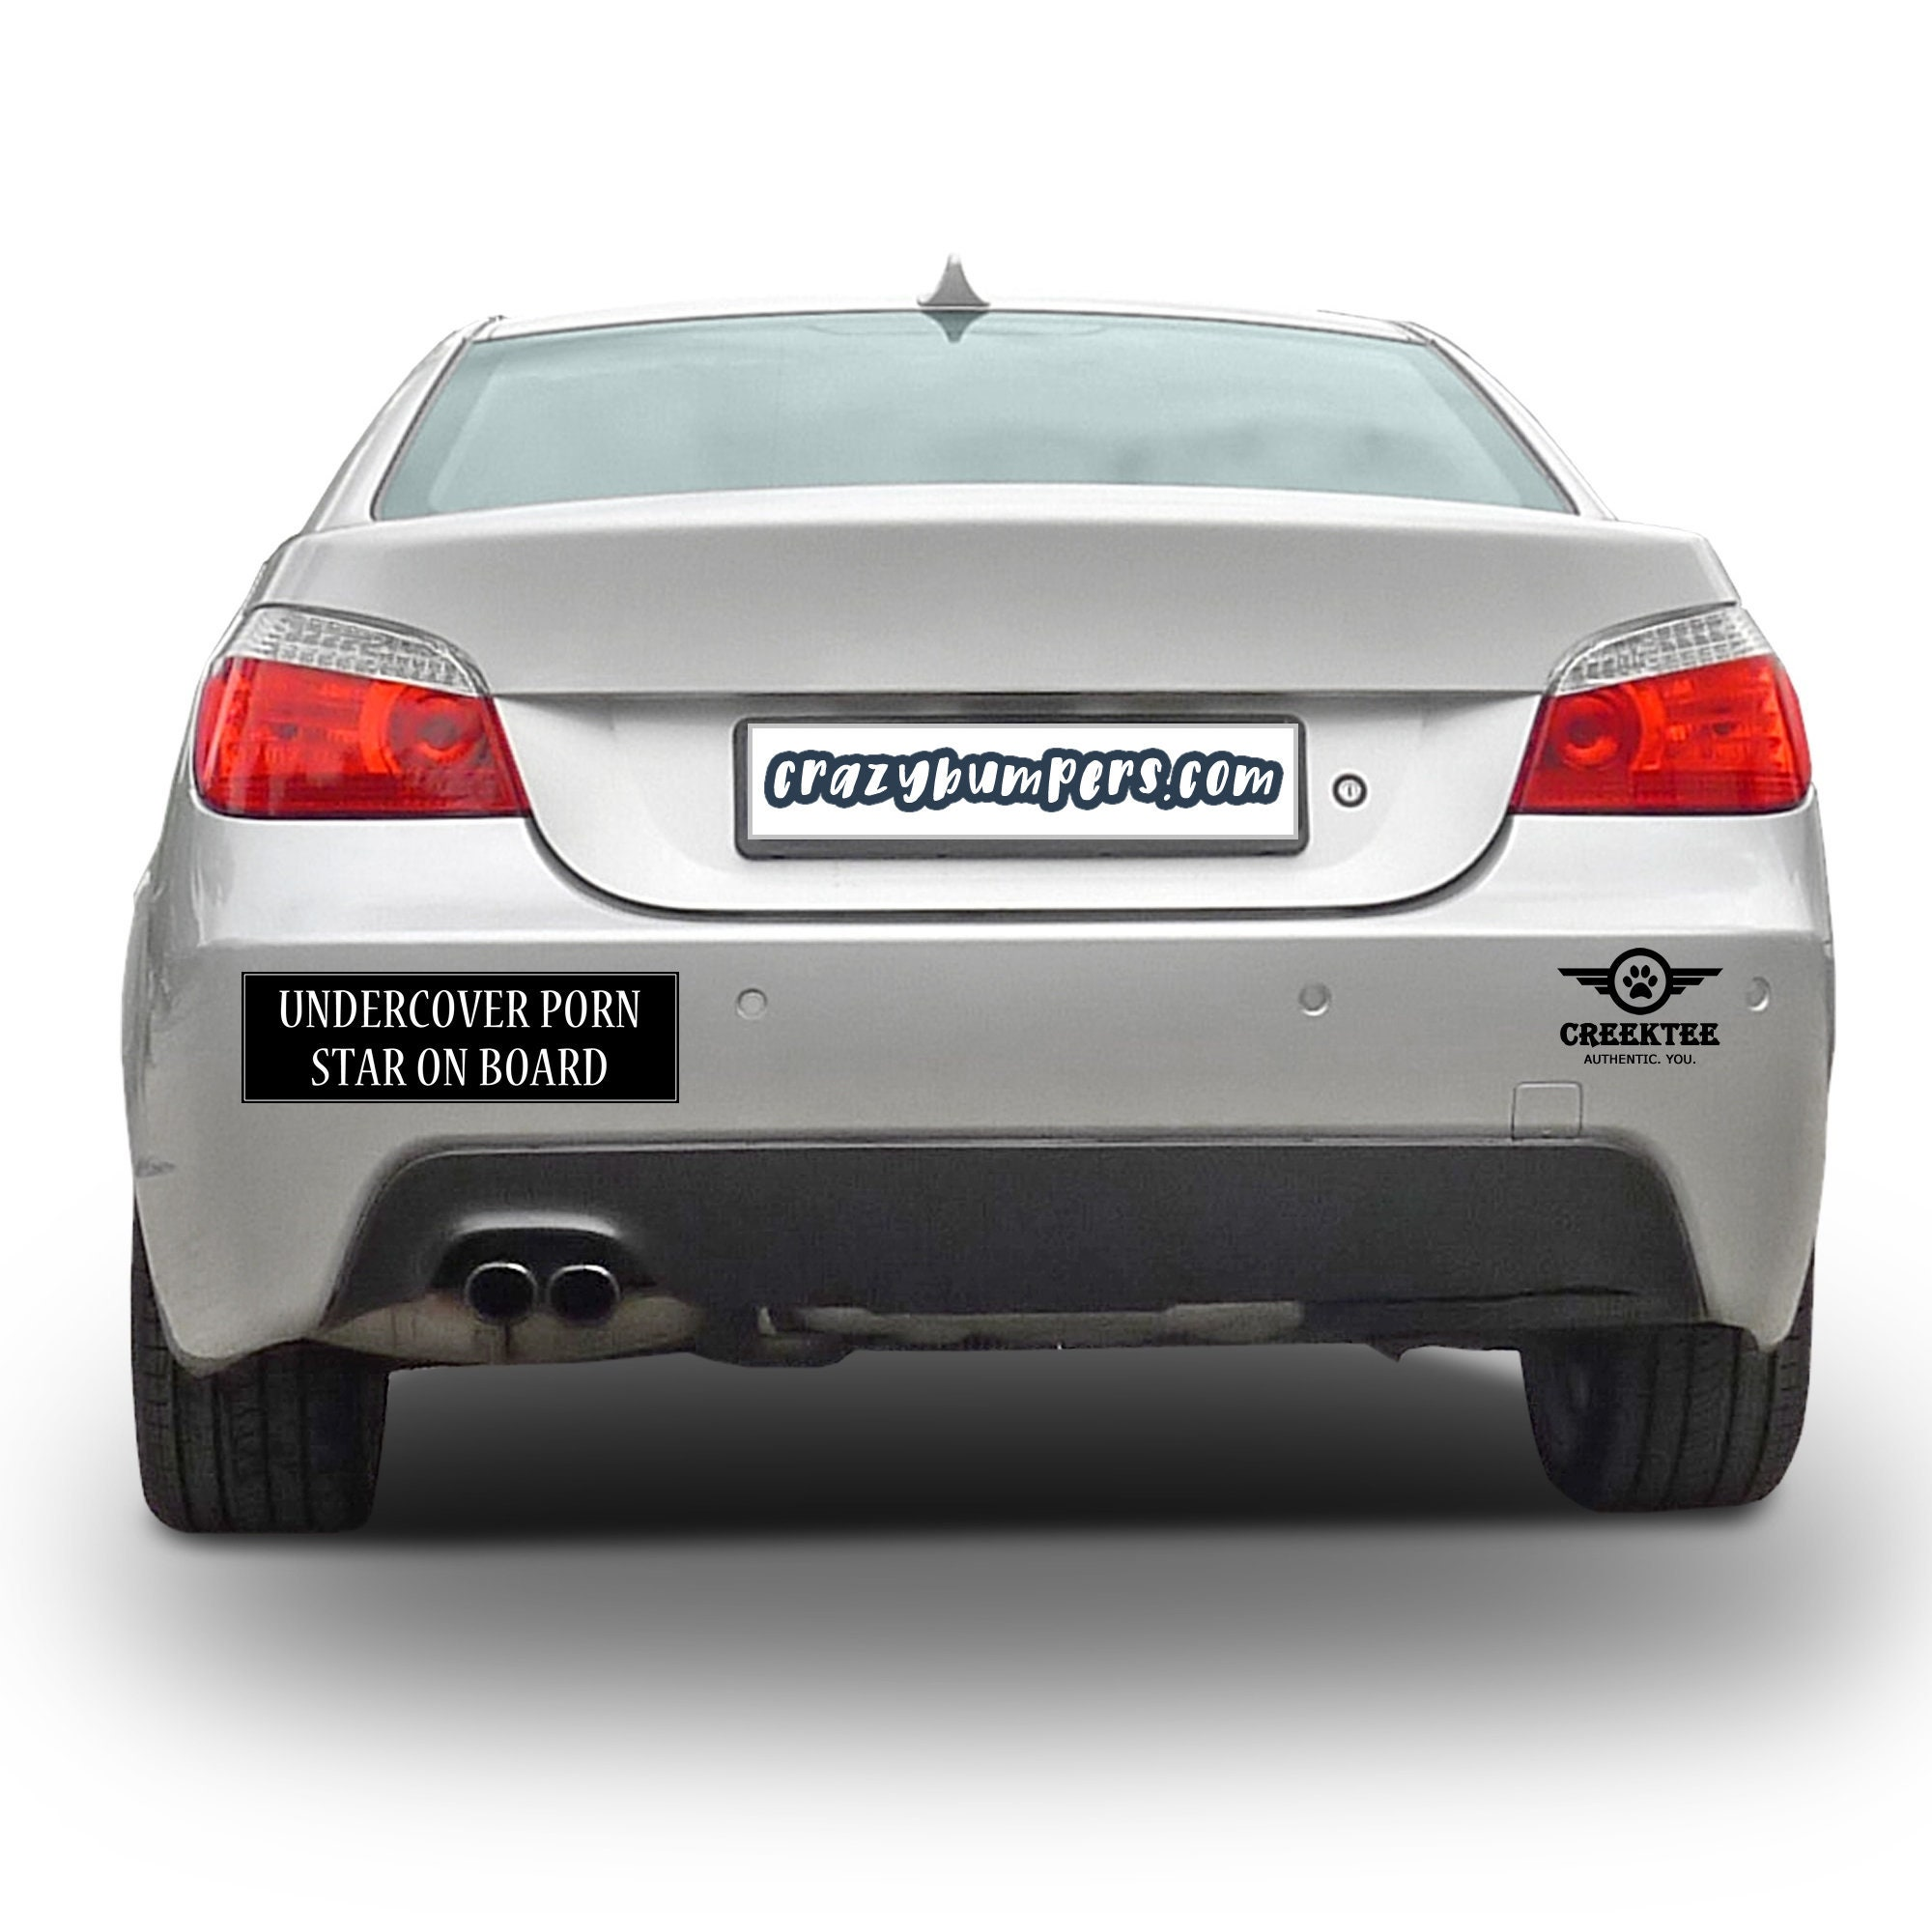 Undercover Porn Star On Board 10 x 3 Bumper Sticker - Custom changes and orders welcomed!